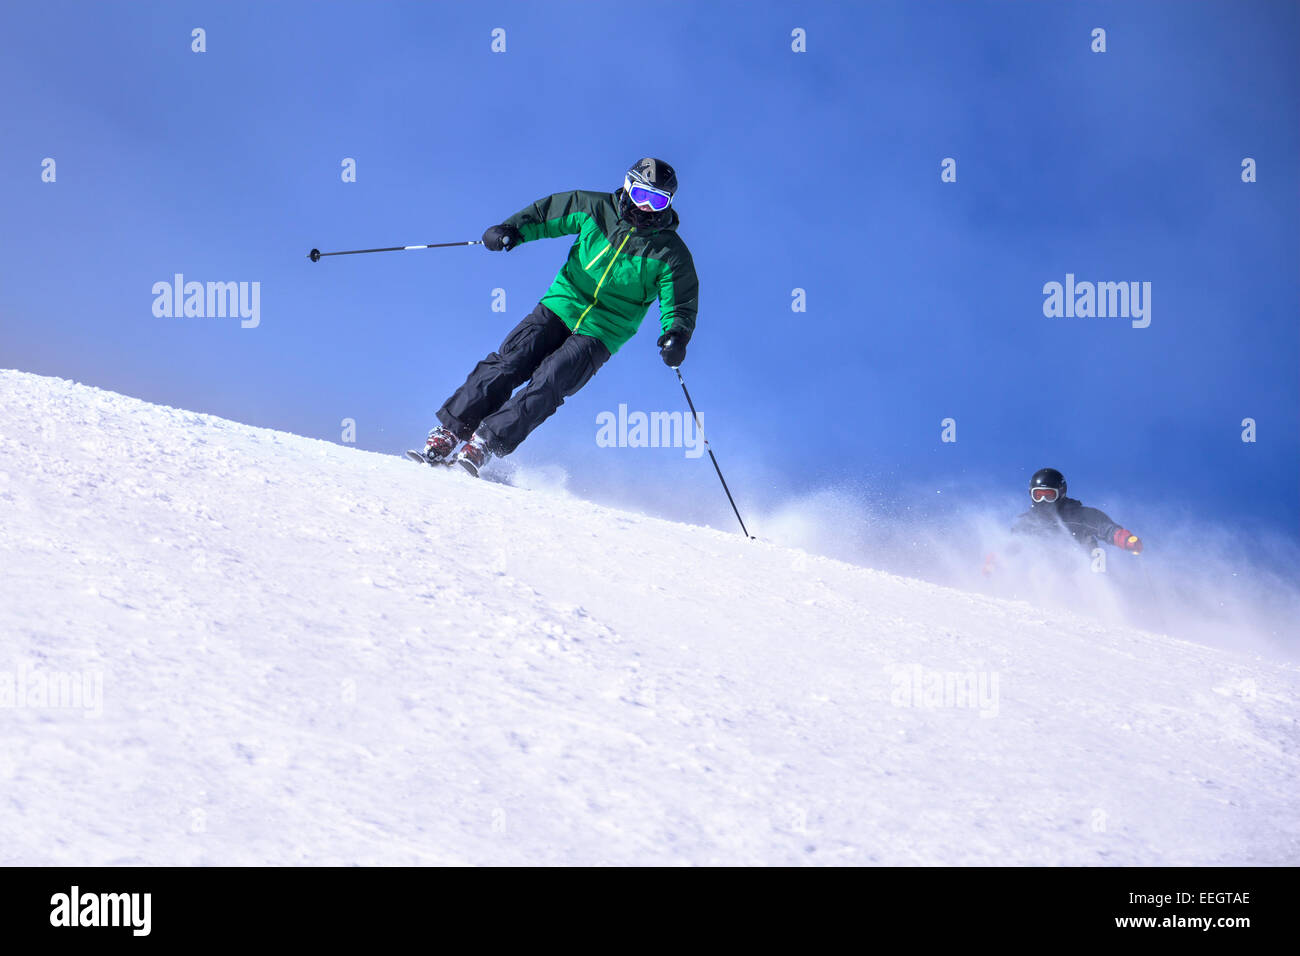 Two Skiers skiing downhill in high mountains and sunny day - Stock Image